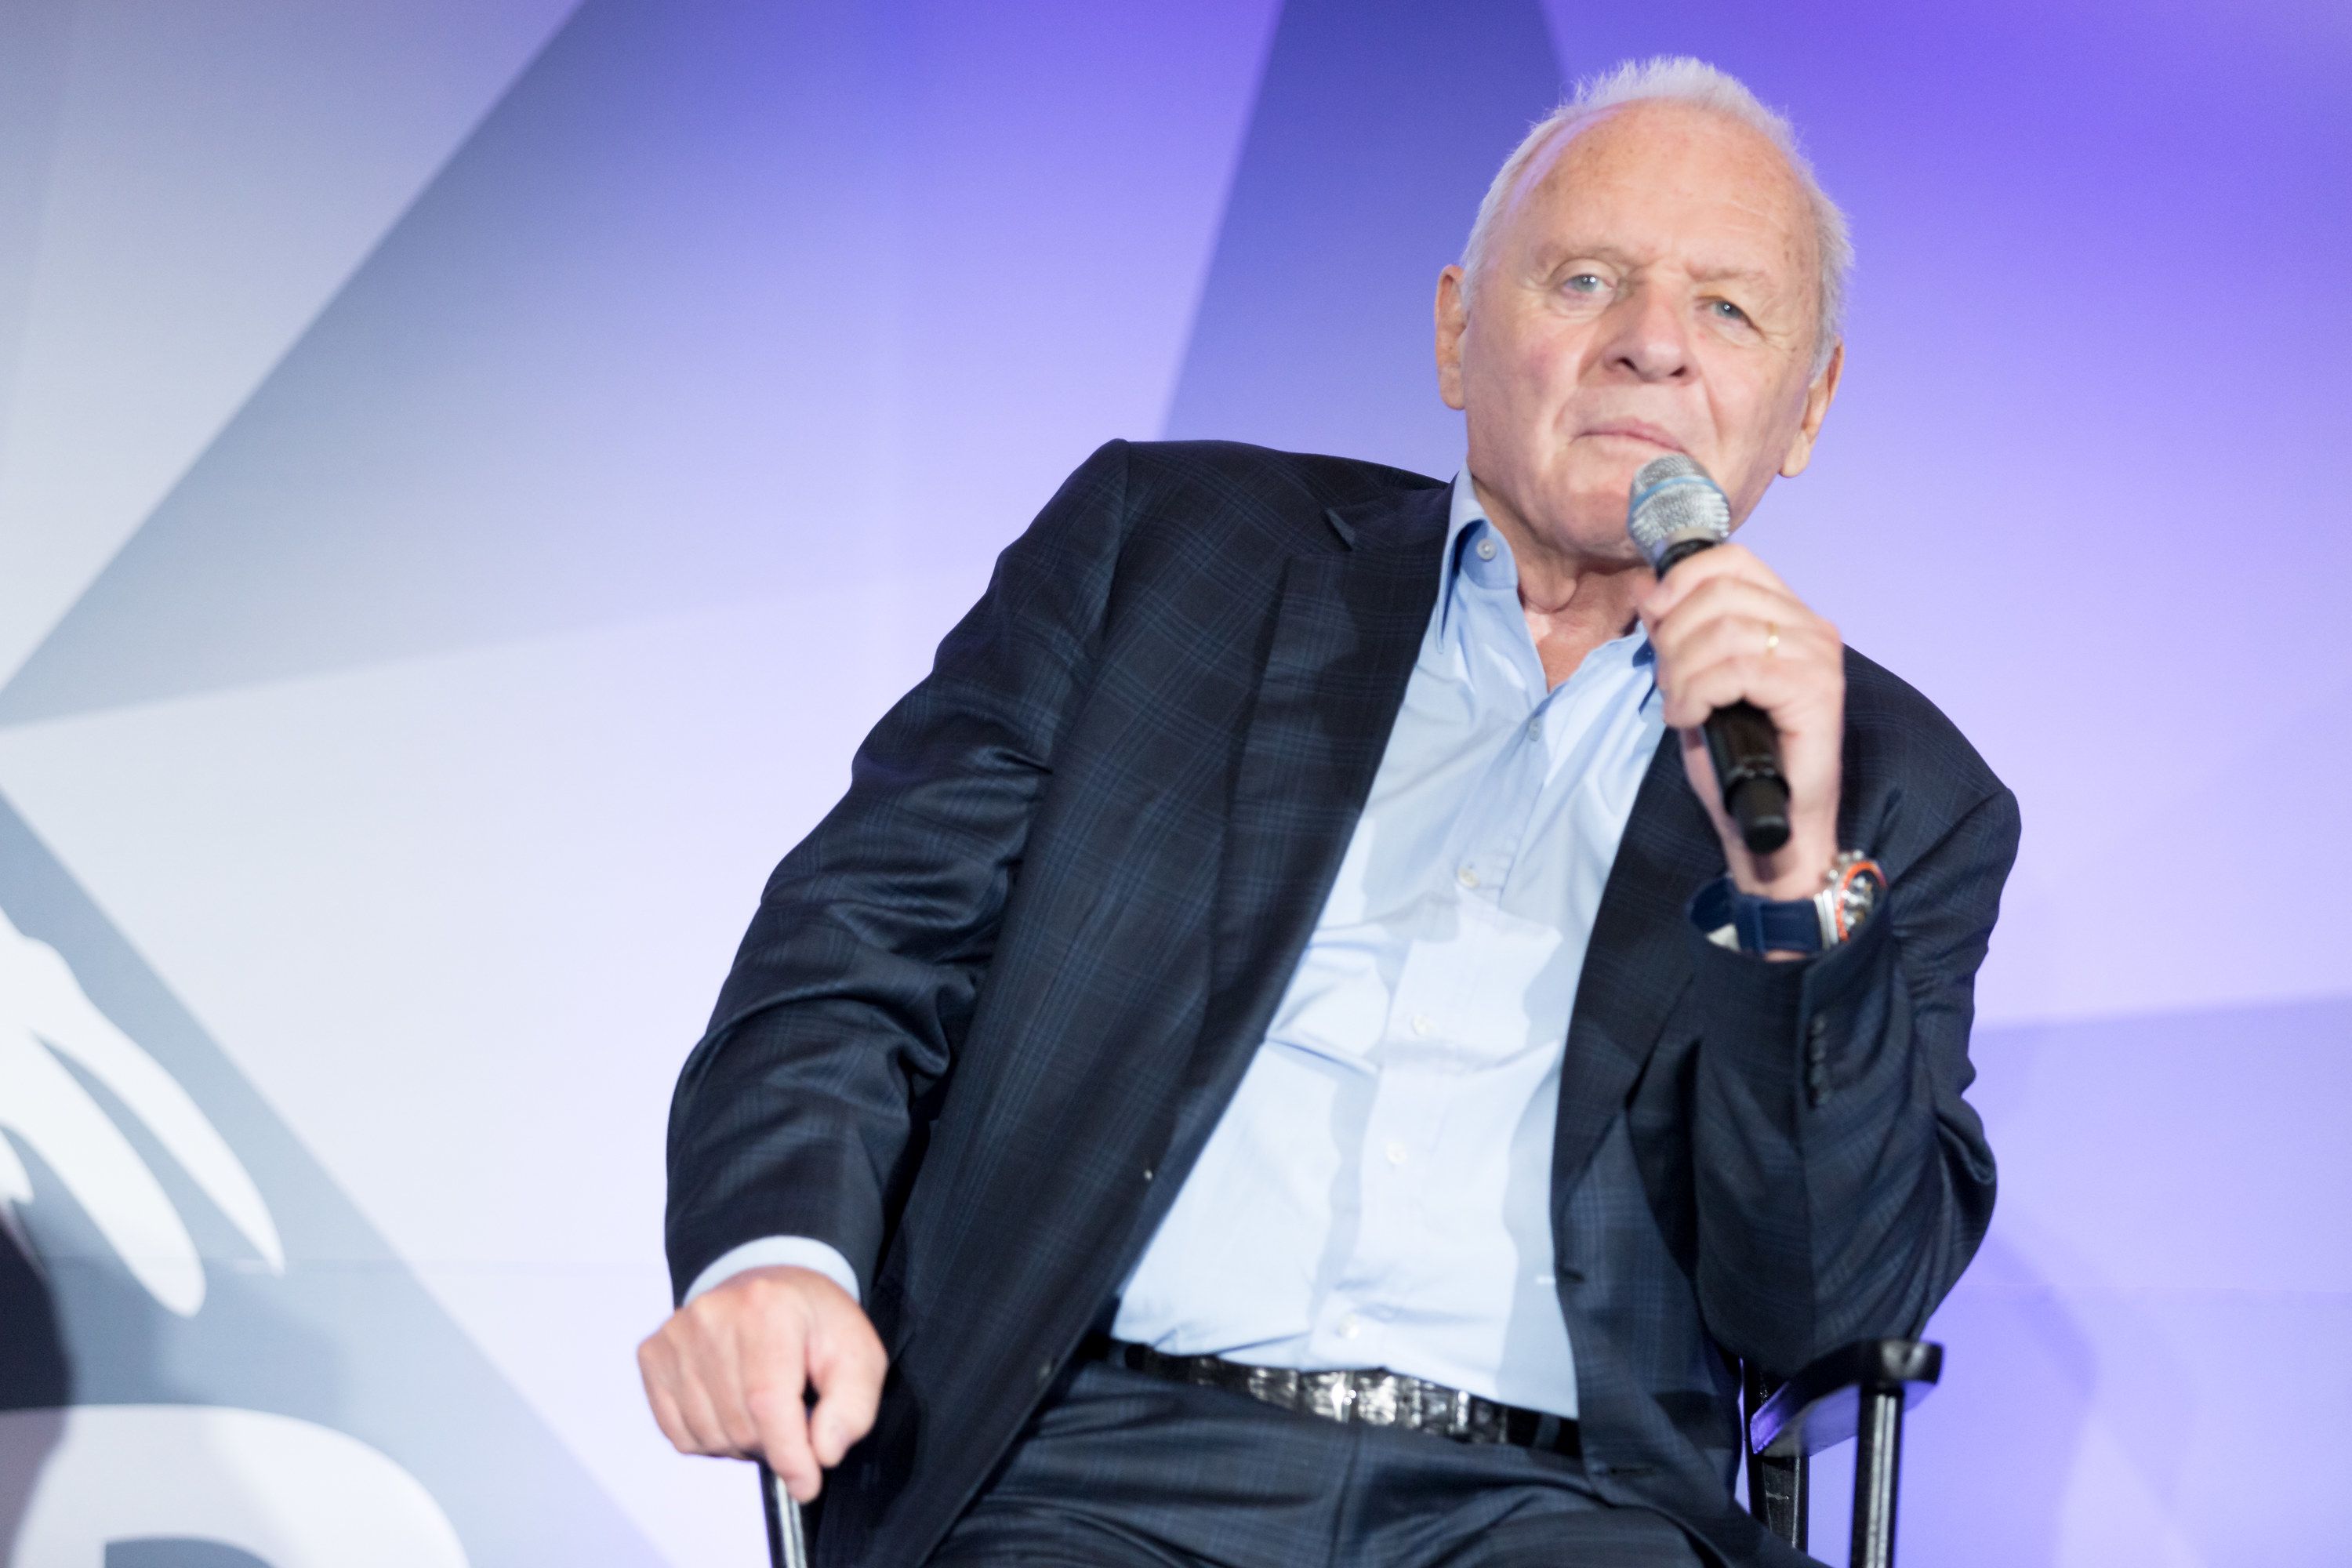 Sir Anthony Hopkins attends the LEAP Foundation on July 25, 2018 in Los Angeles, California